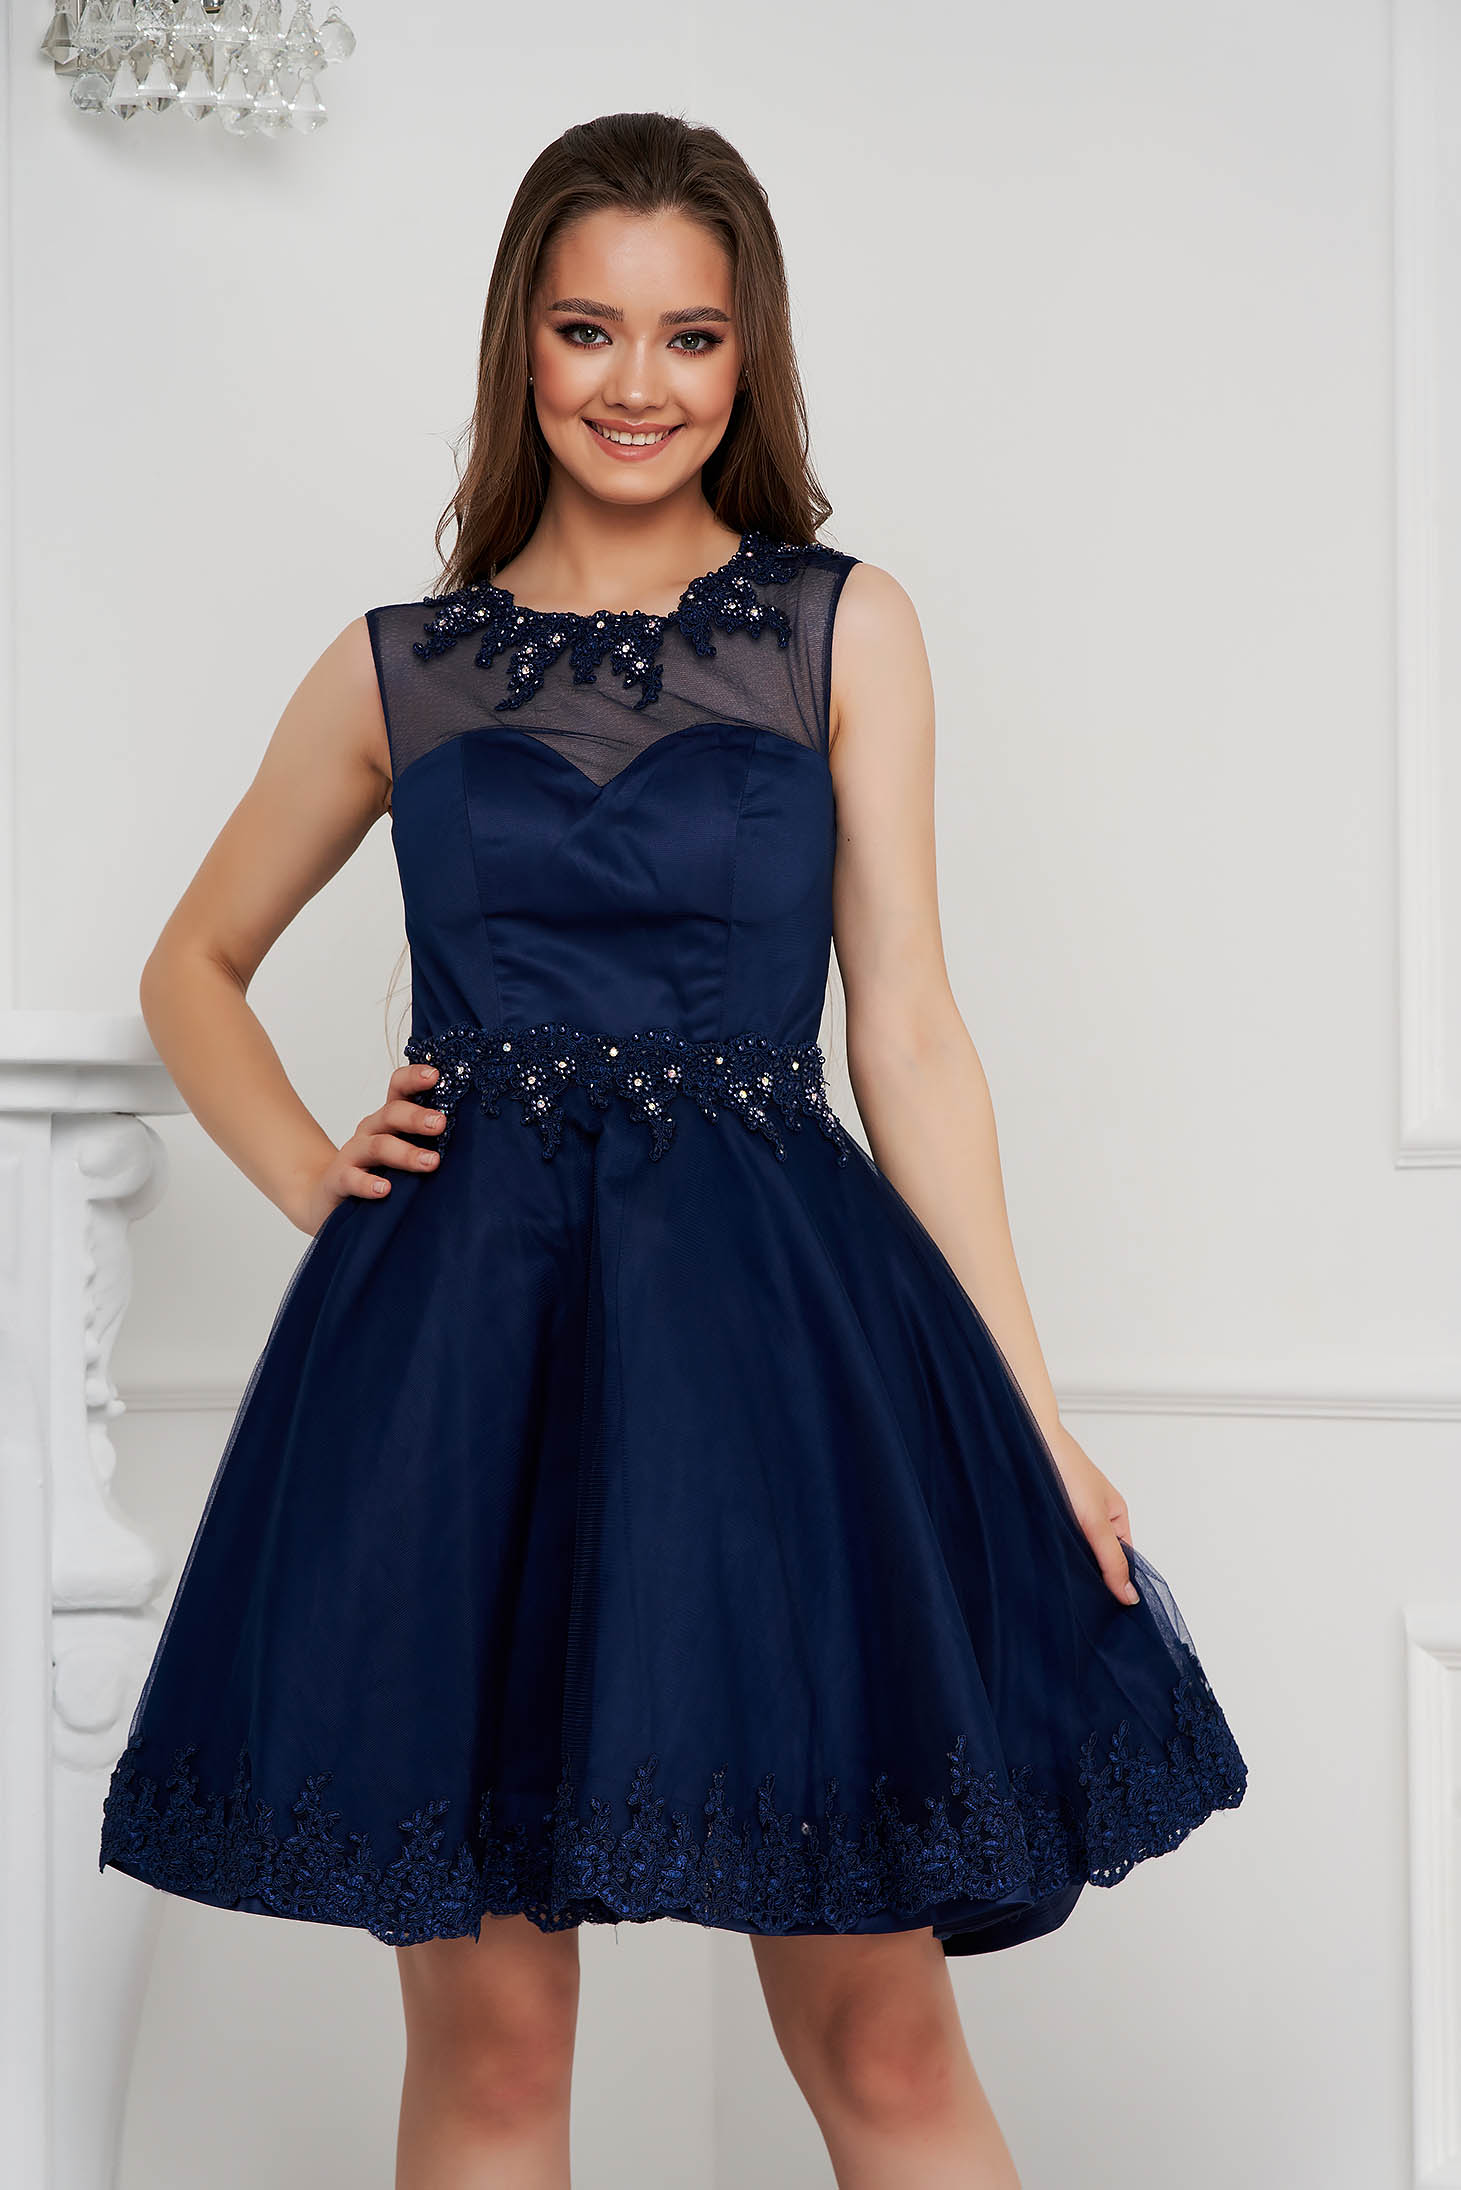 Darkblue dress short cut cloche from tulle with pearls with embellished accessories